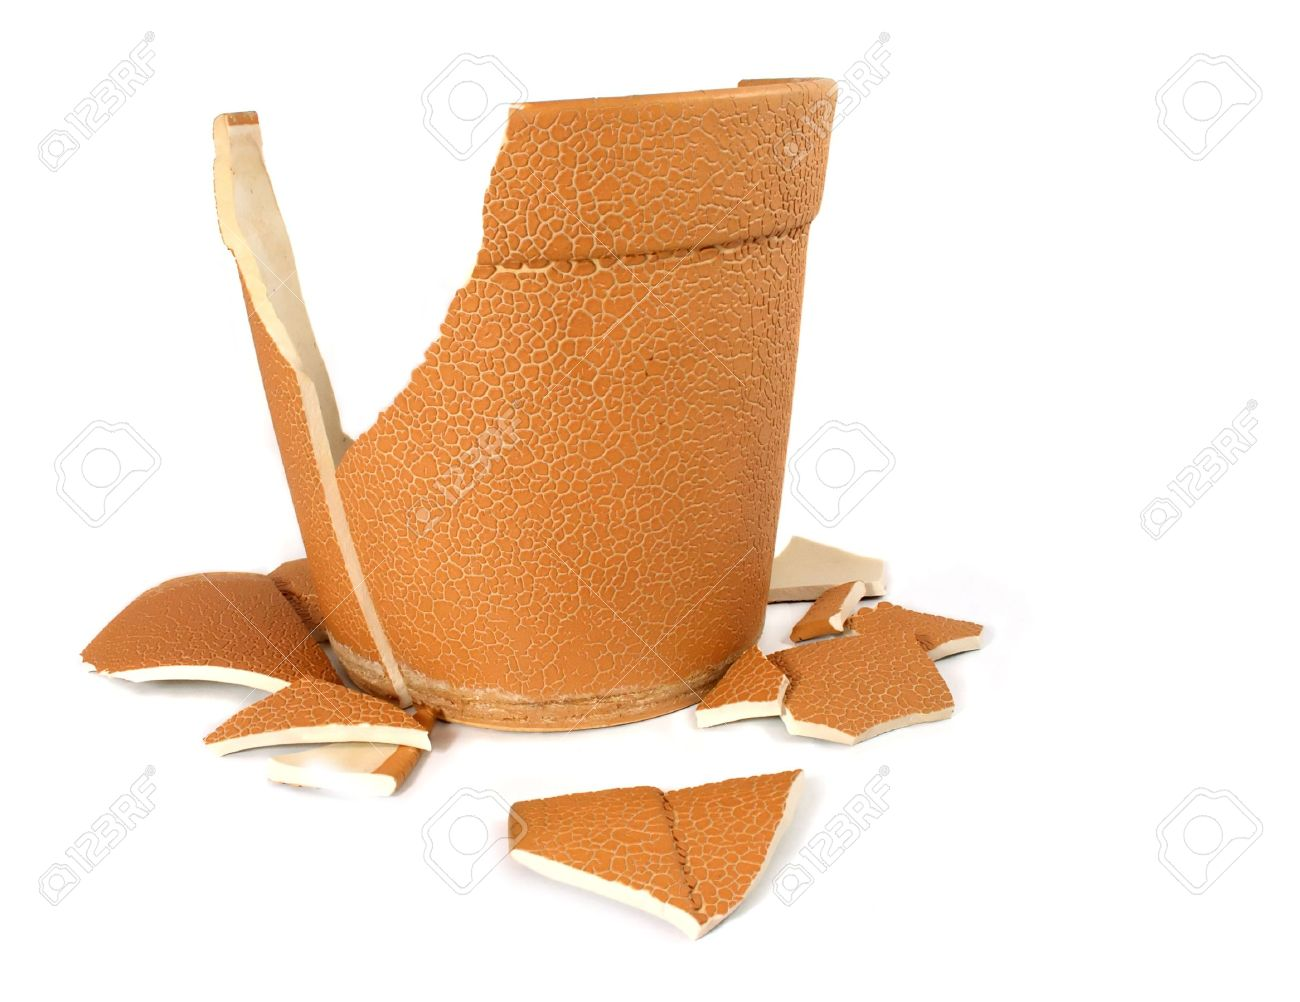 Broken Flower Pot The Broken Flowerpot On White Background Stock Photo Picture And